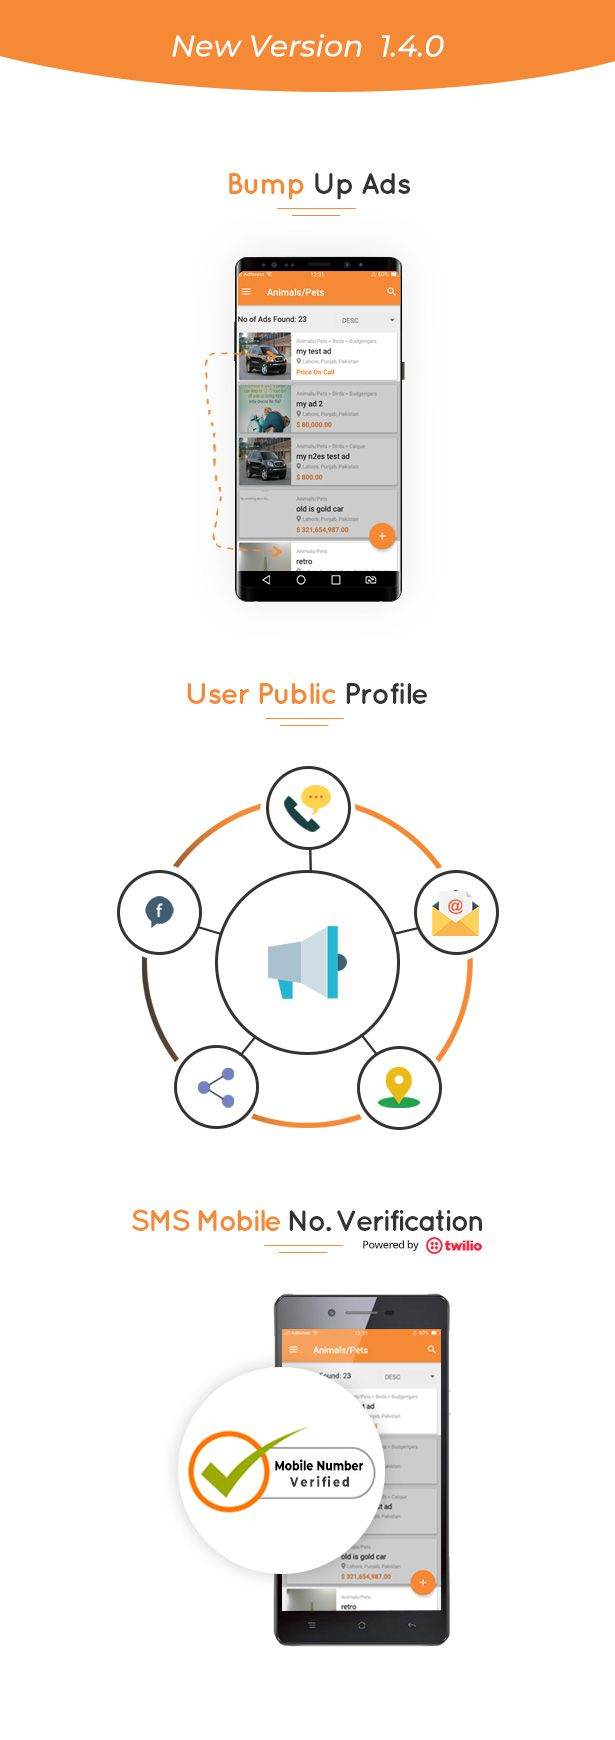 #ADFOREST #CLASSIFIEDADS #ANDROID #MOBILE #APP LAUNCHED NEW VERSION 1.4.0 with Bump up ads, User public Profile, sms mobile no. verification and many more features 😎